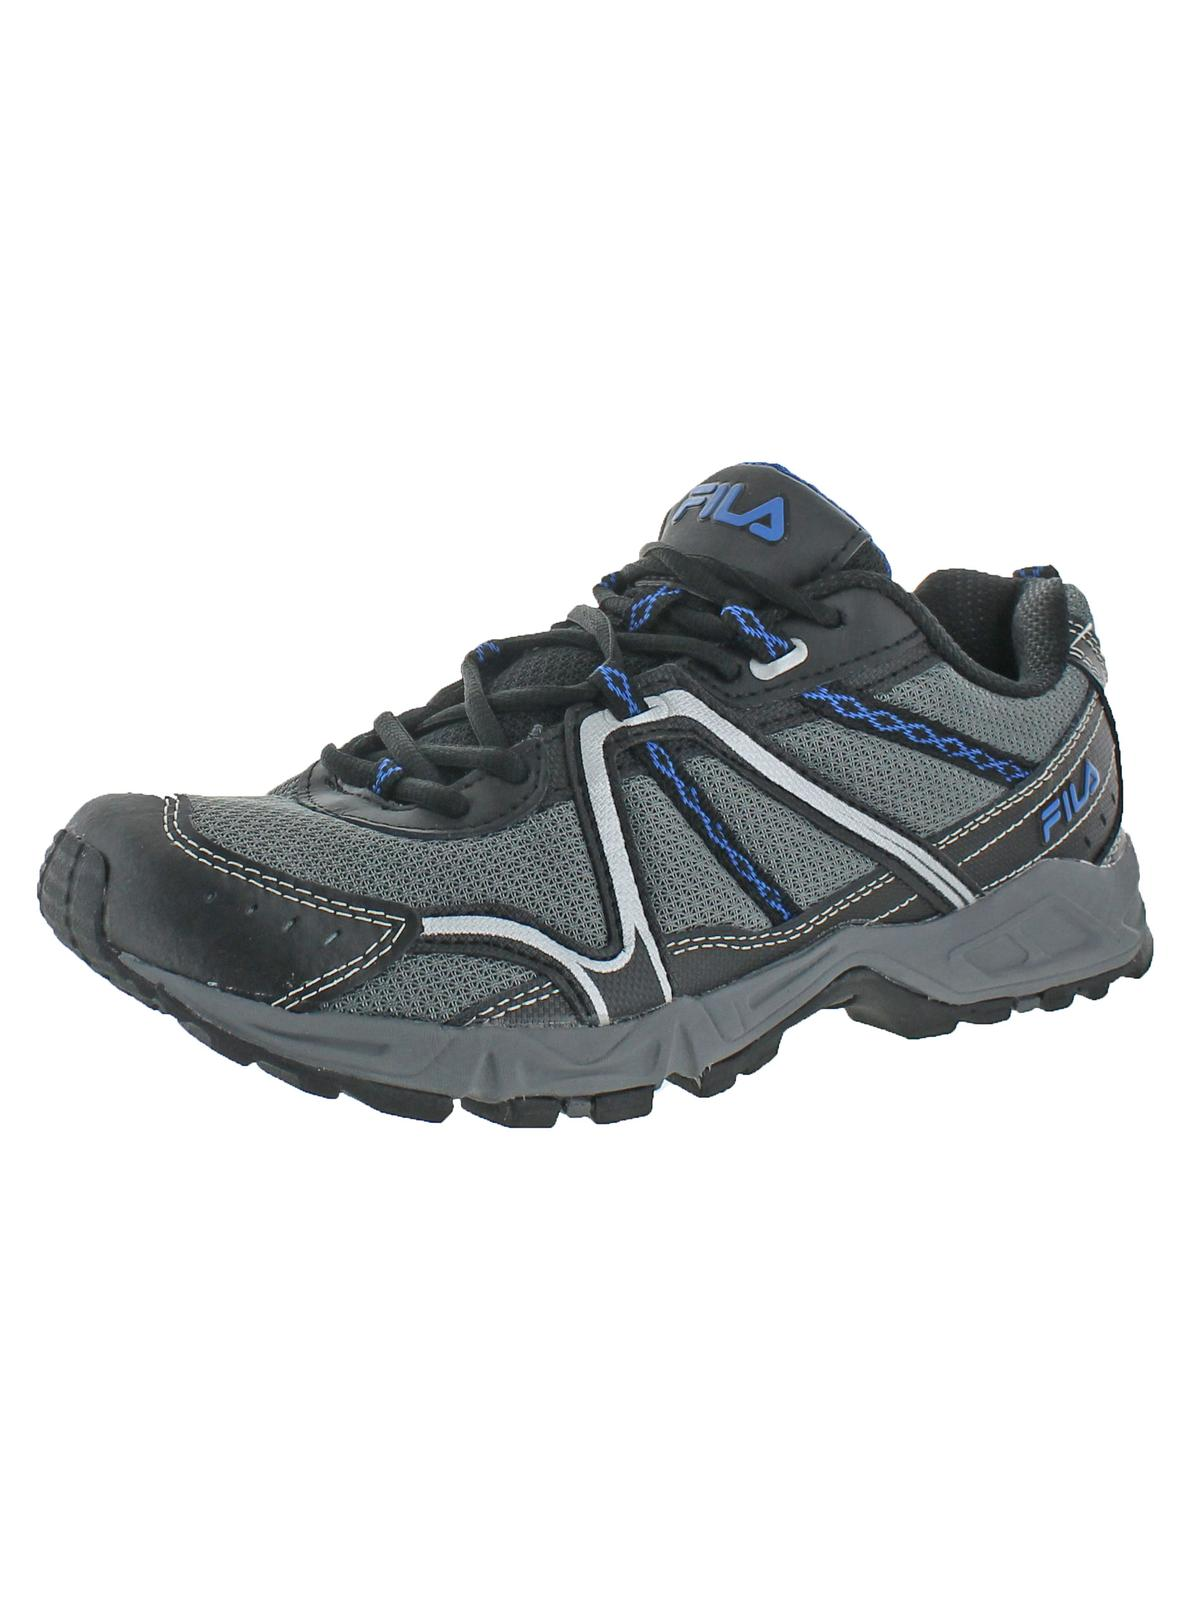 Fila Mens Ascent 12 Mesh Embroidered Hiking, Trail Shoes by Fila